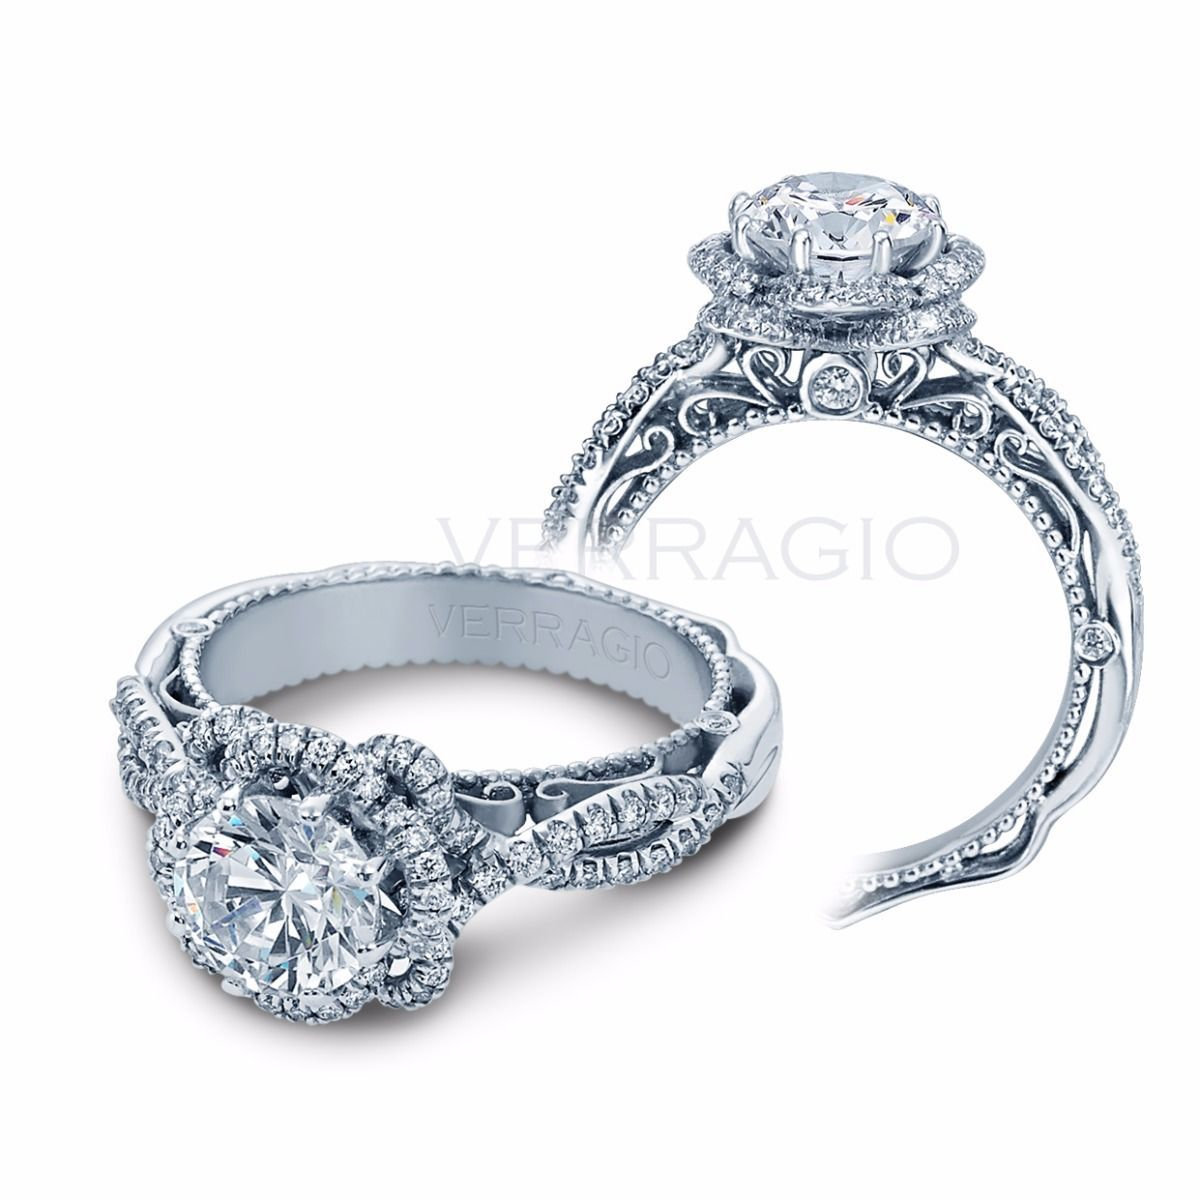 Engagement verragio rings: the venetian collection forecast to wear for spring in 2019